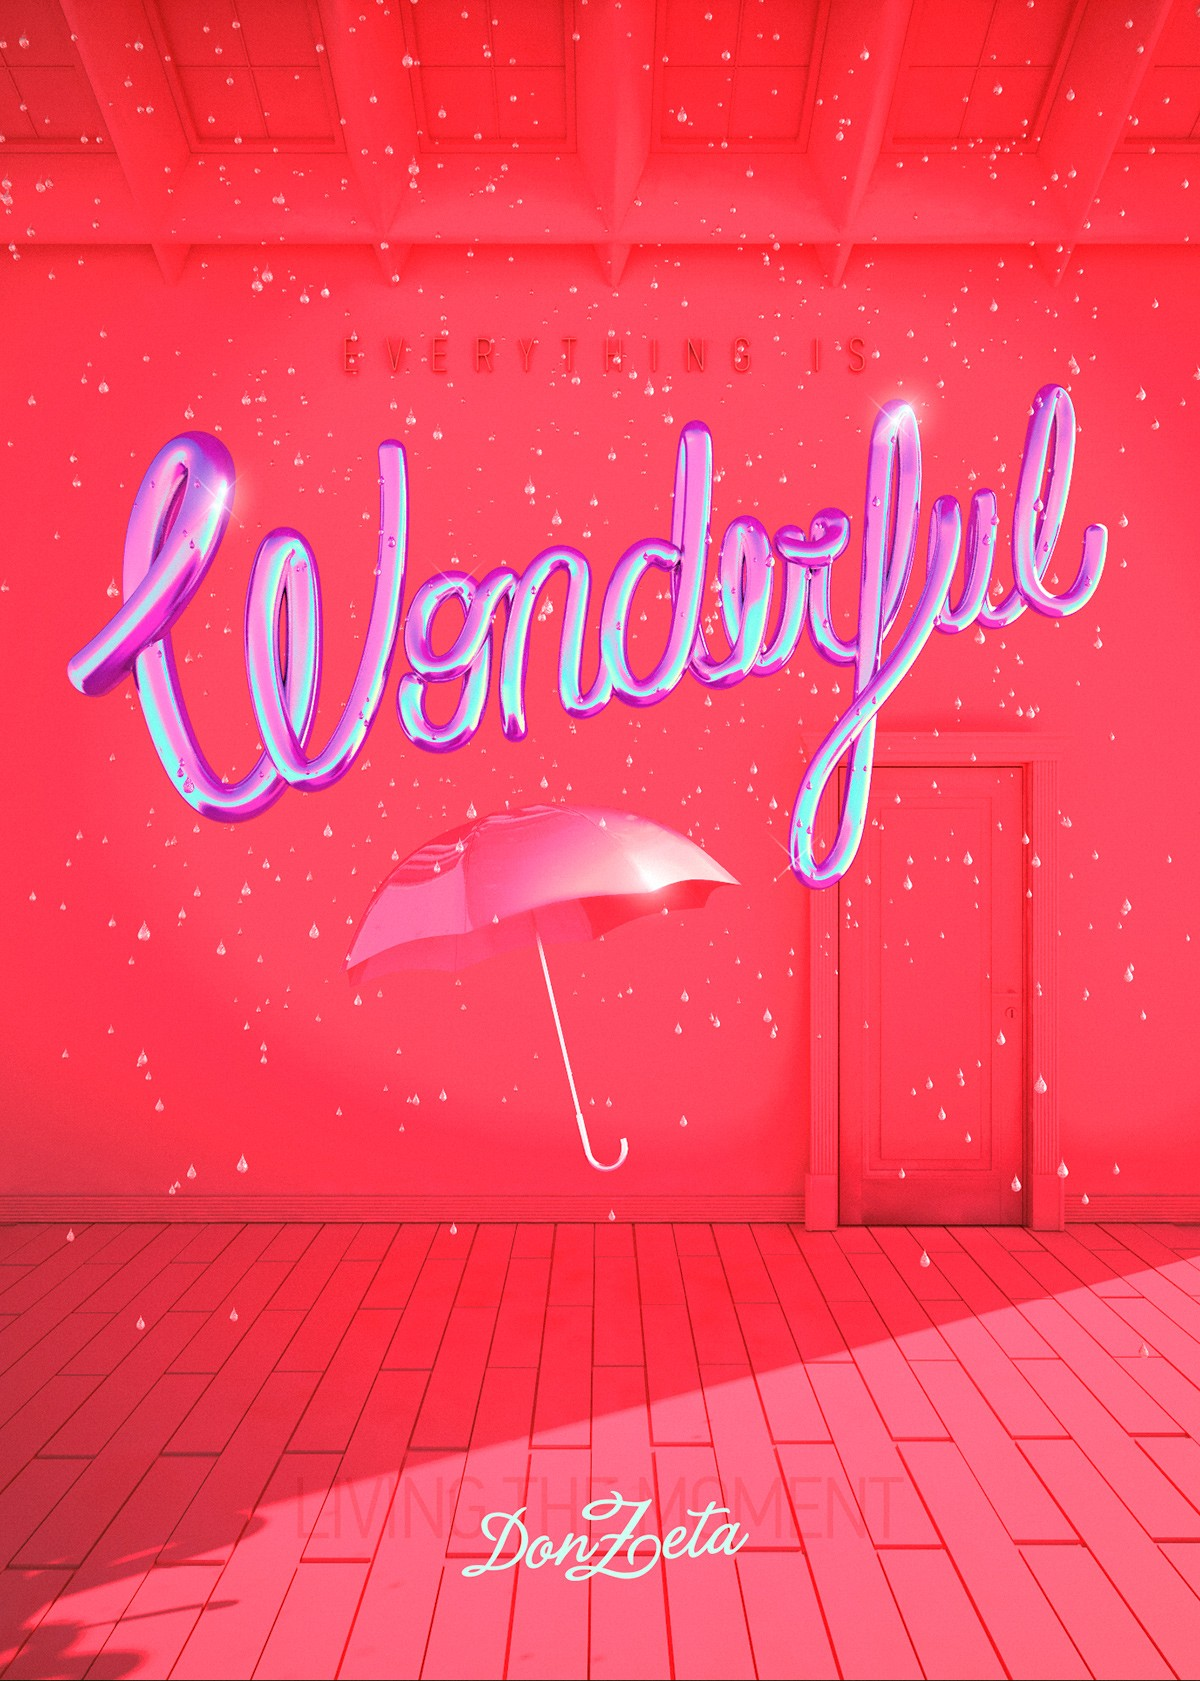 donzeta_wonderful_01a